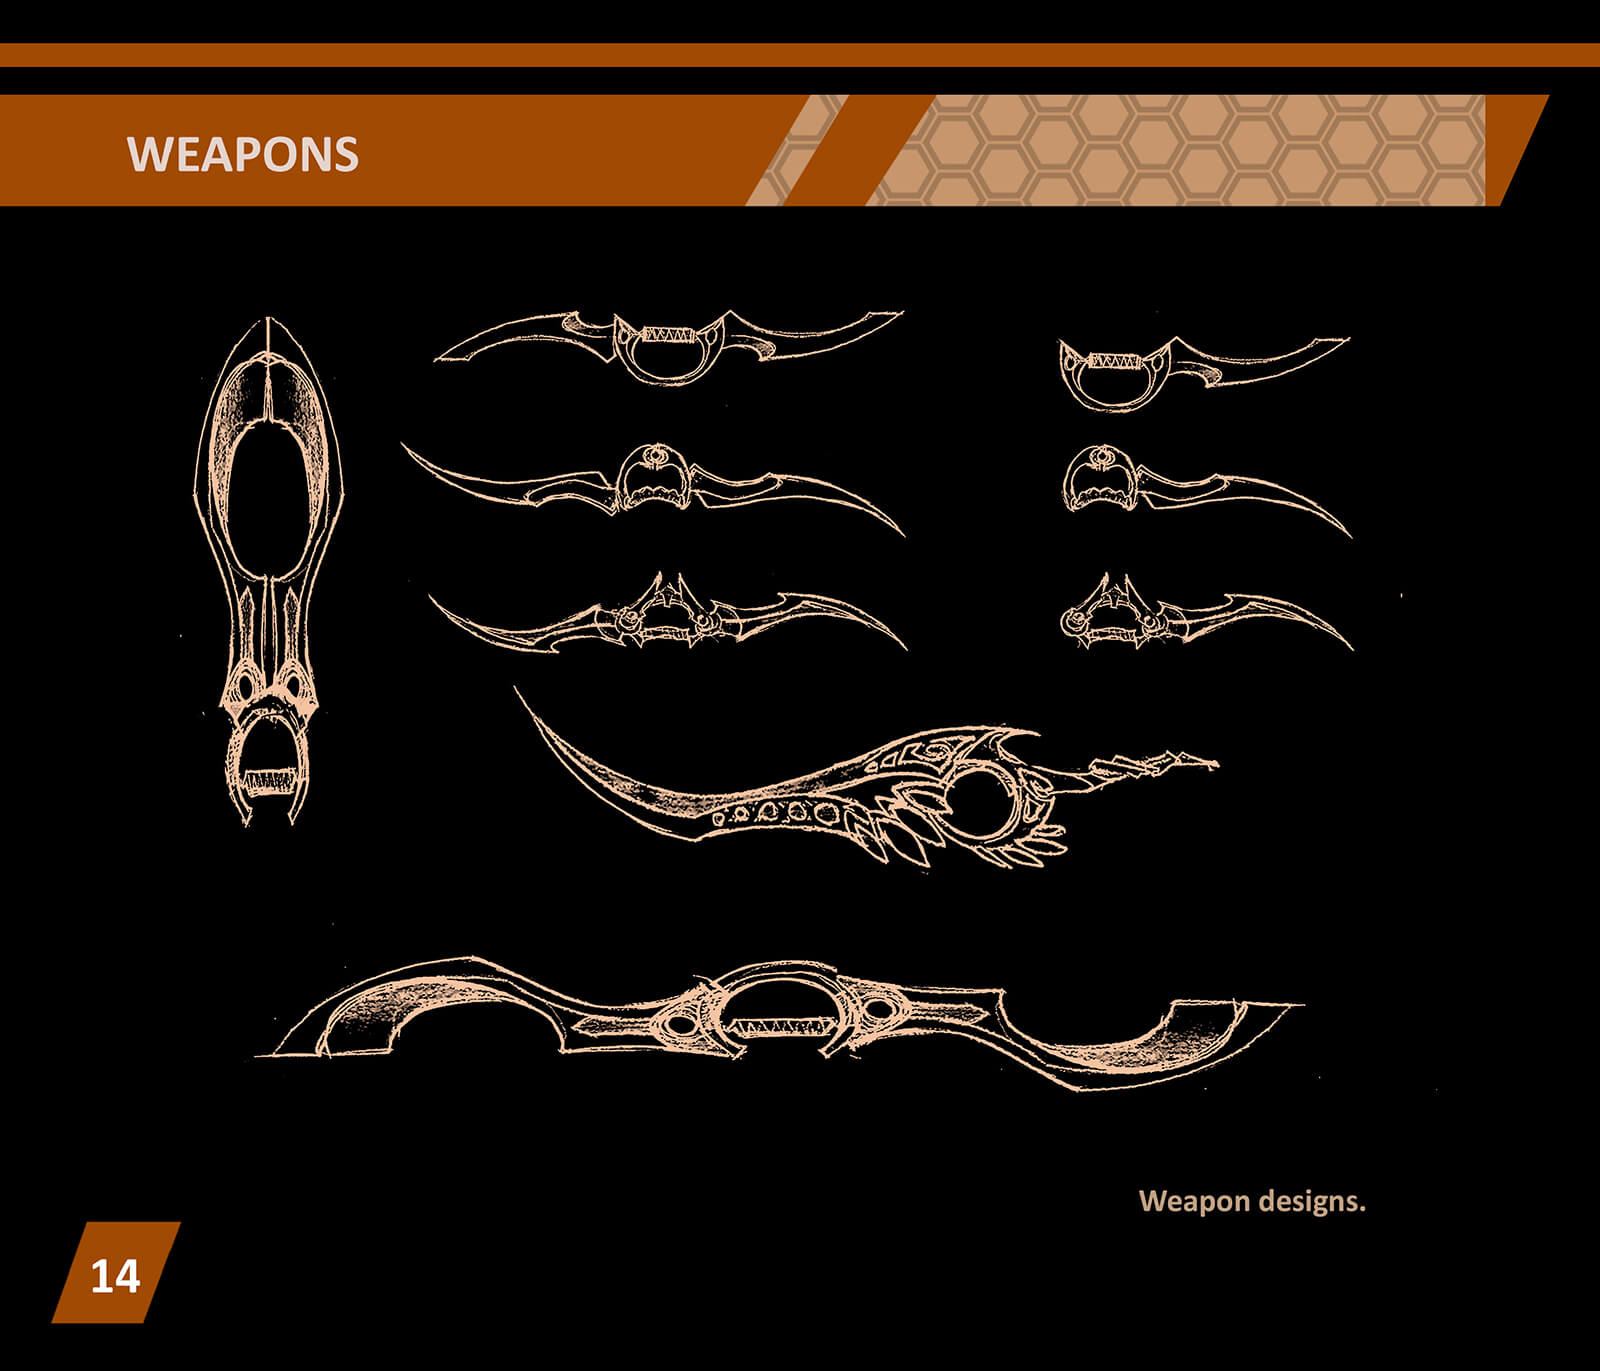 Black and white concept sketches of elaborate, curved swords and daggers